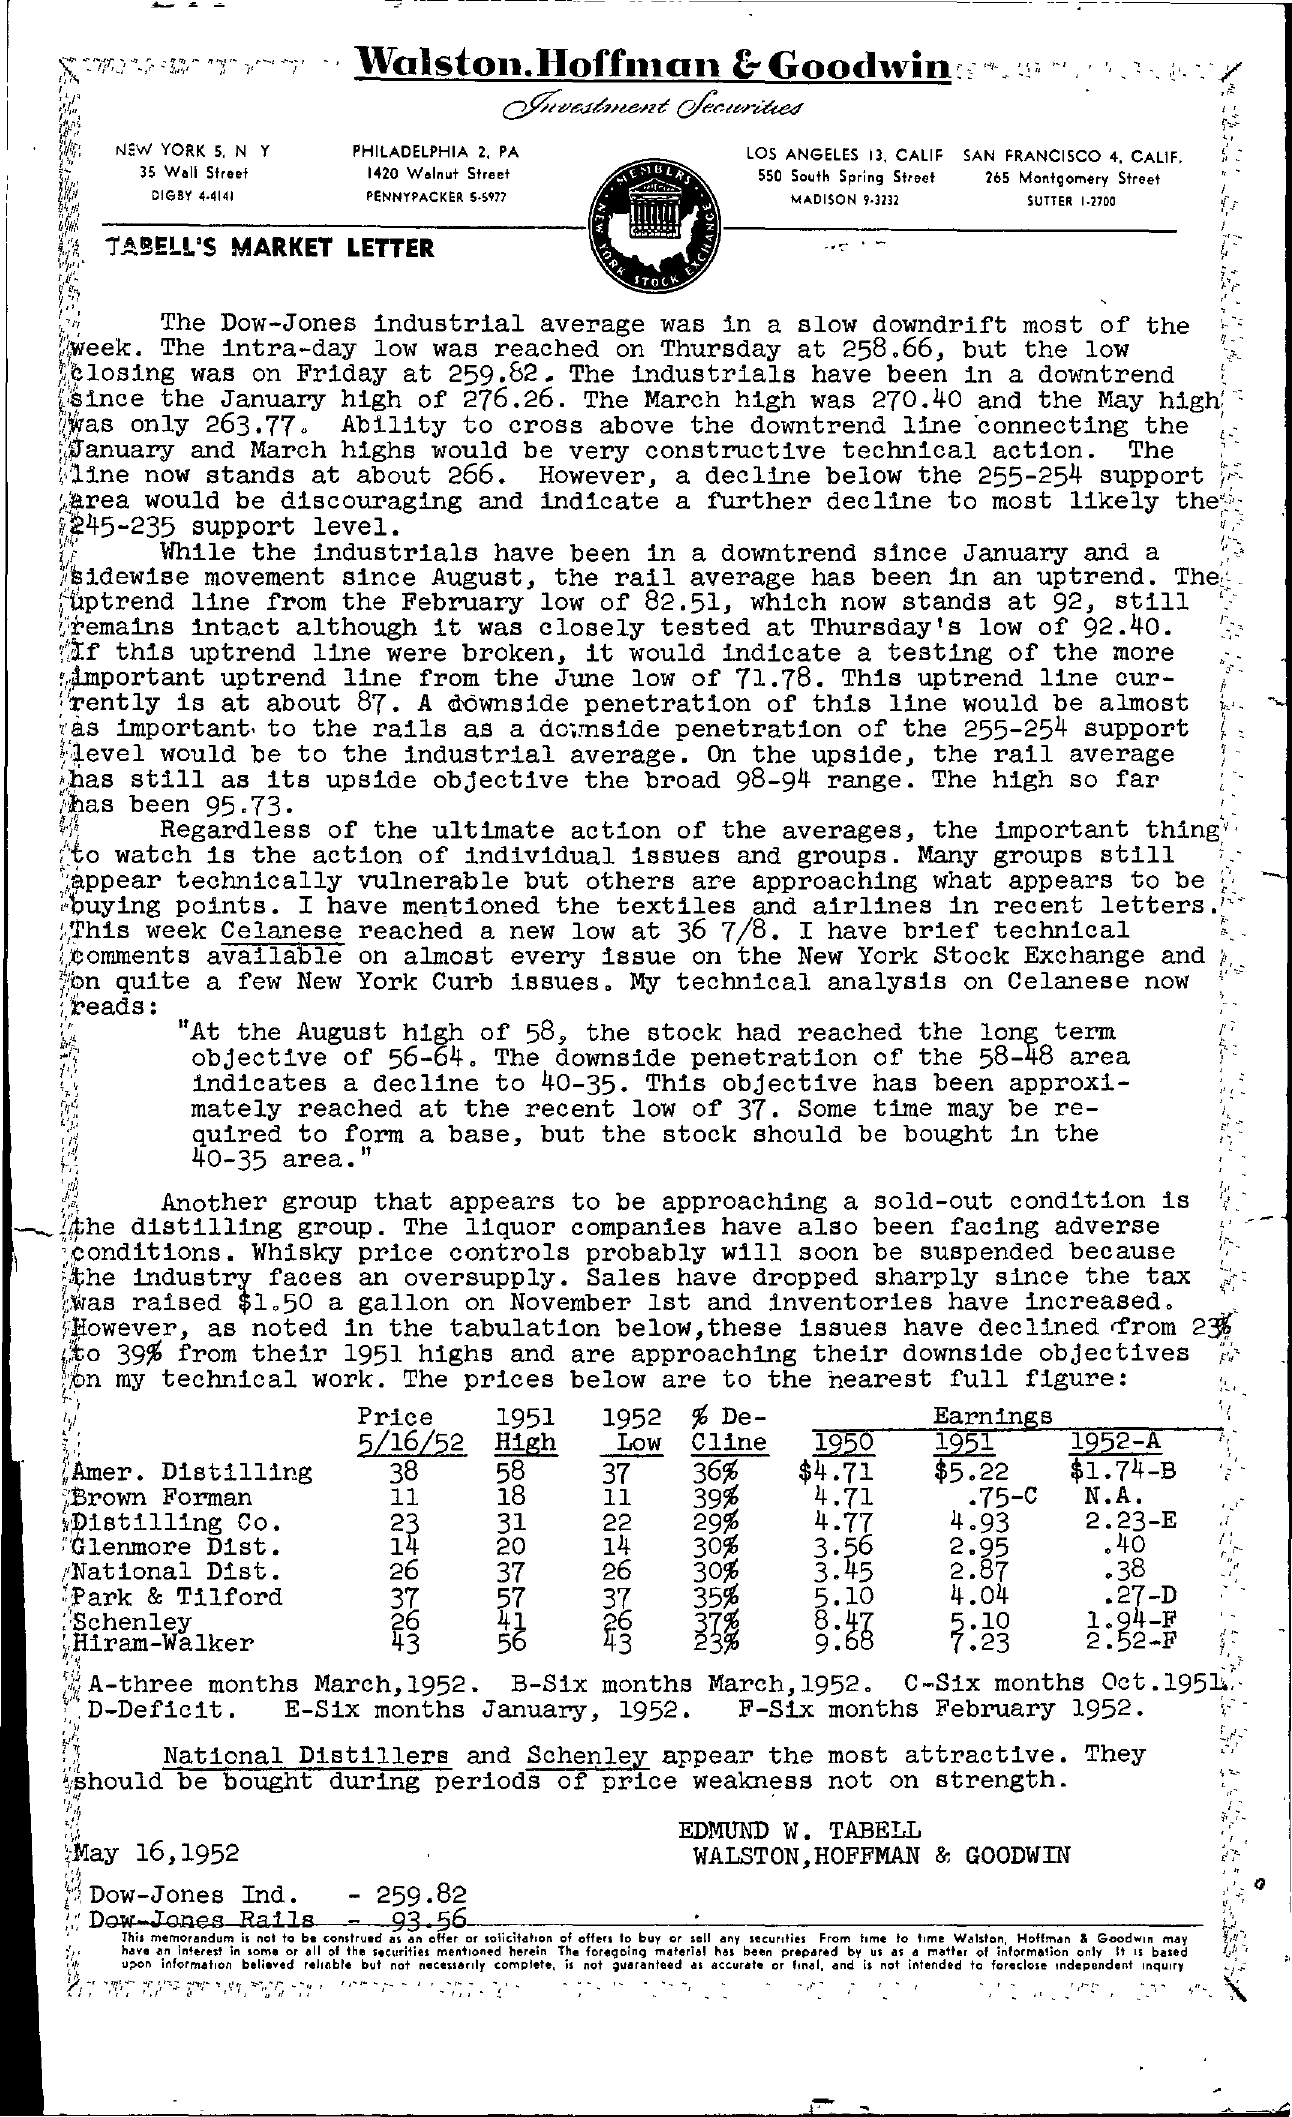 Tabell's Market Letter - May 16, 1952